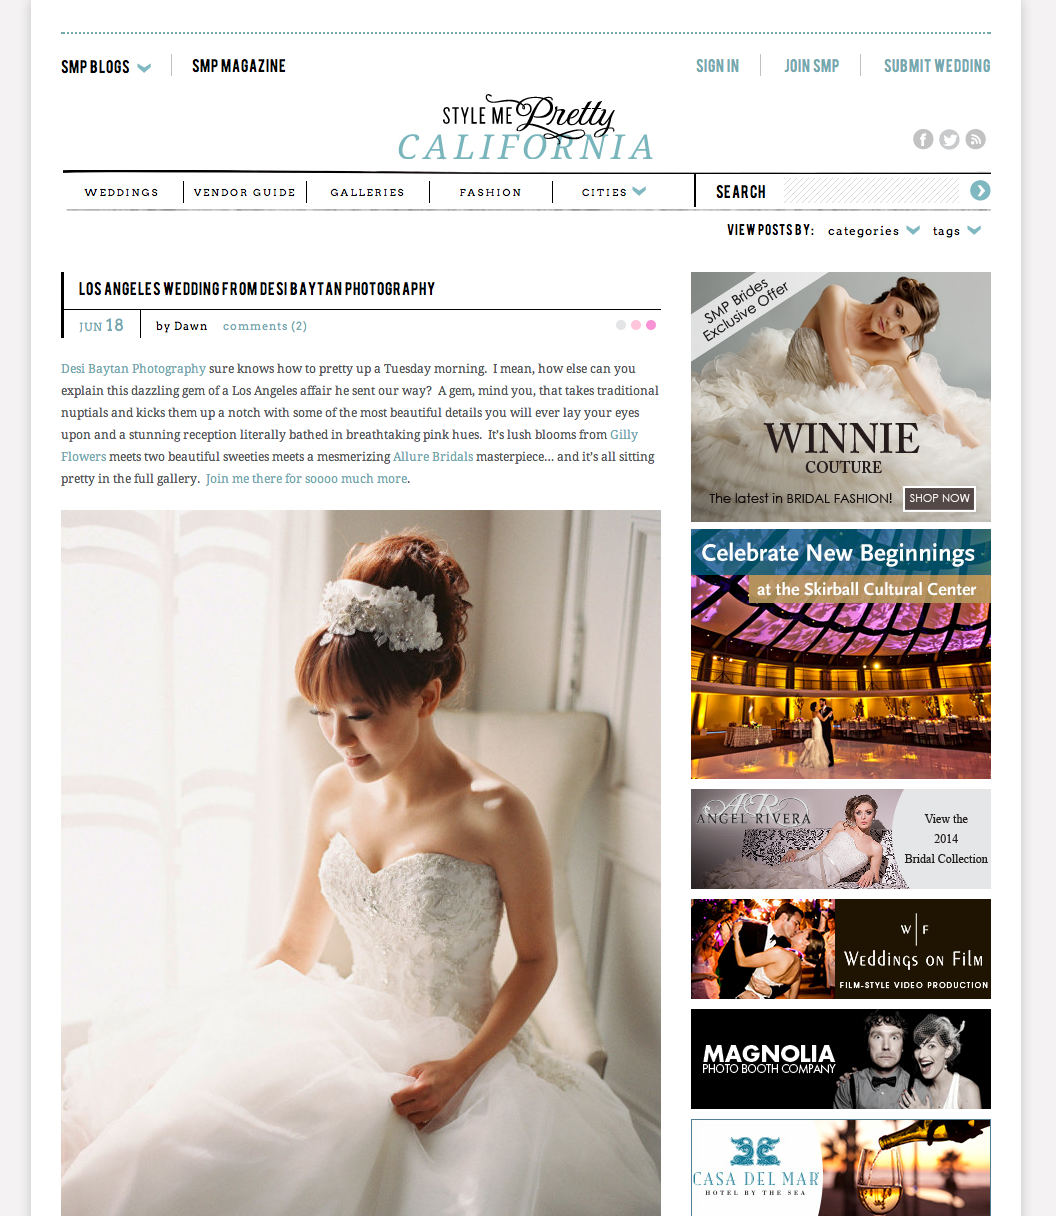 Style Me Pretty Feature of Tram and Aaron's Wedding at the Vibiana